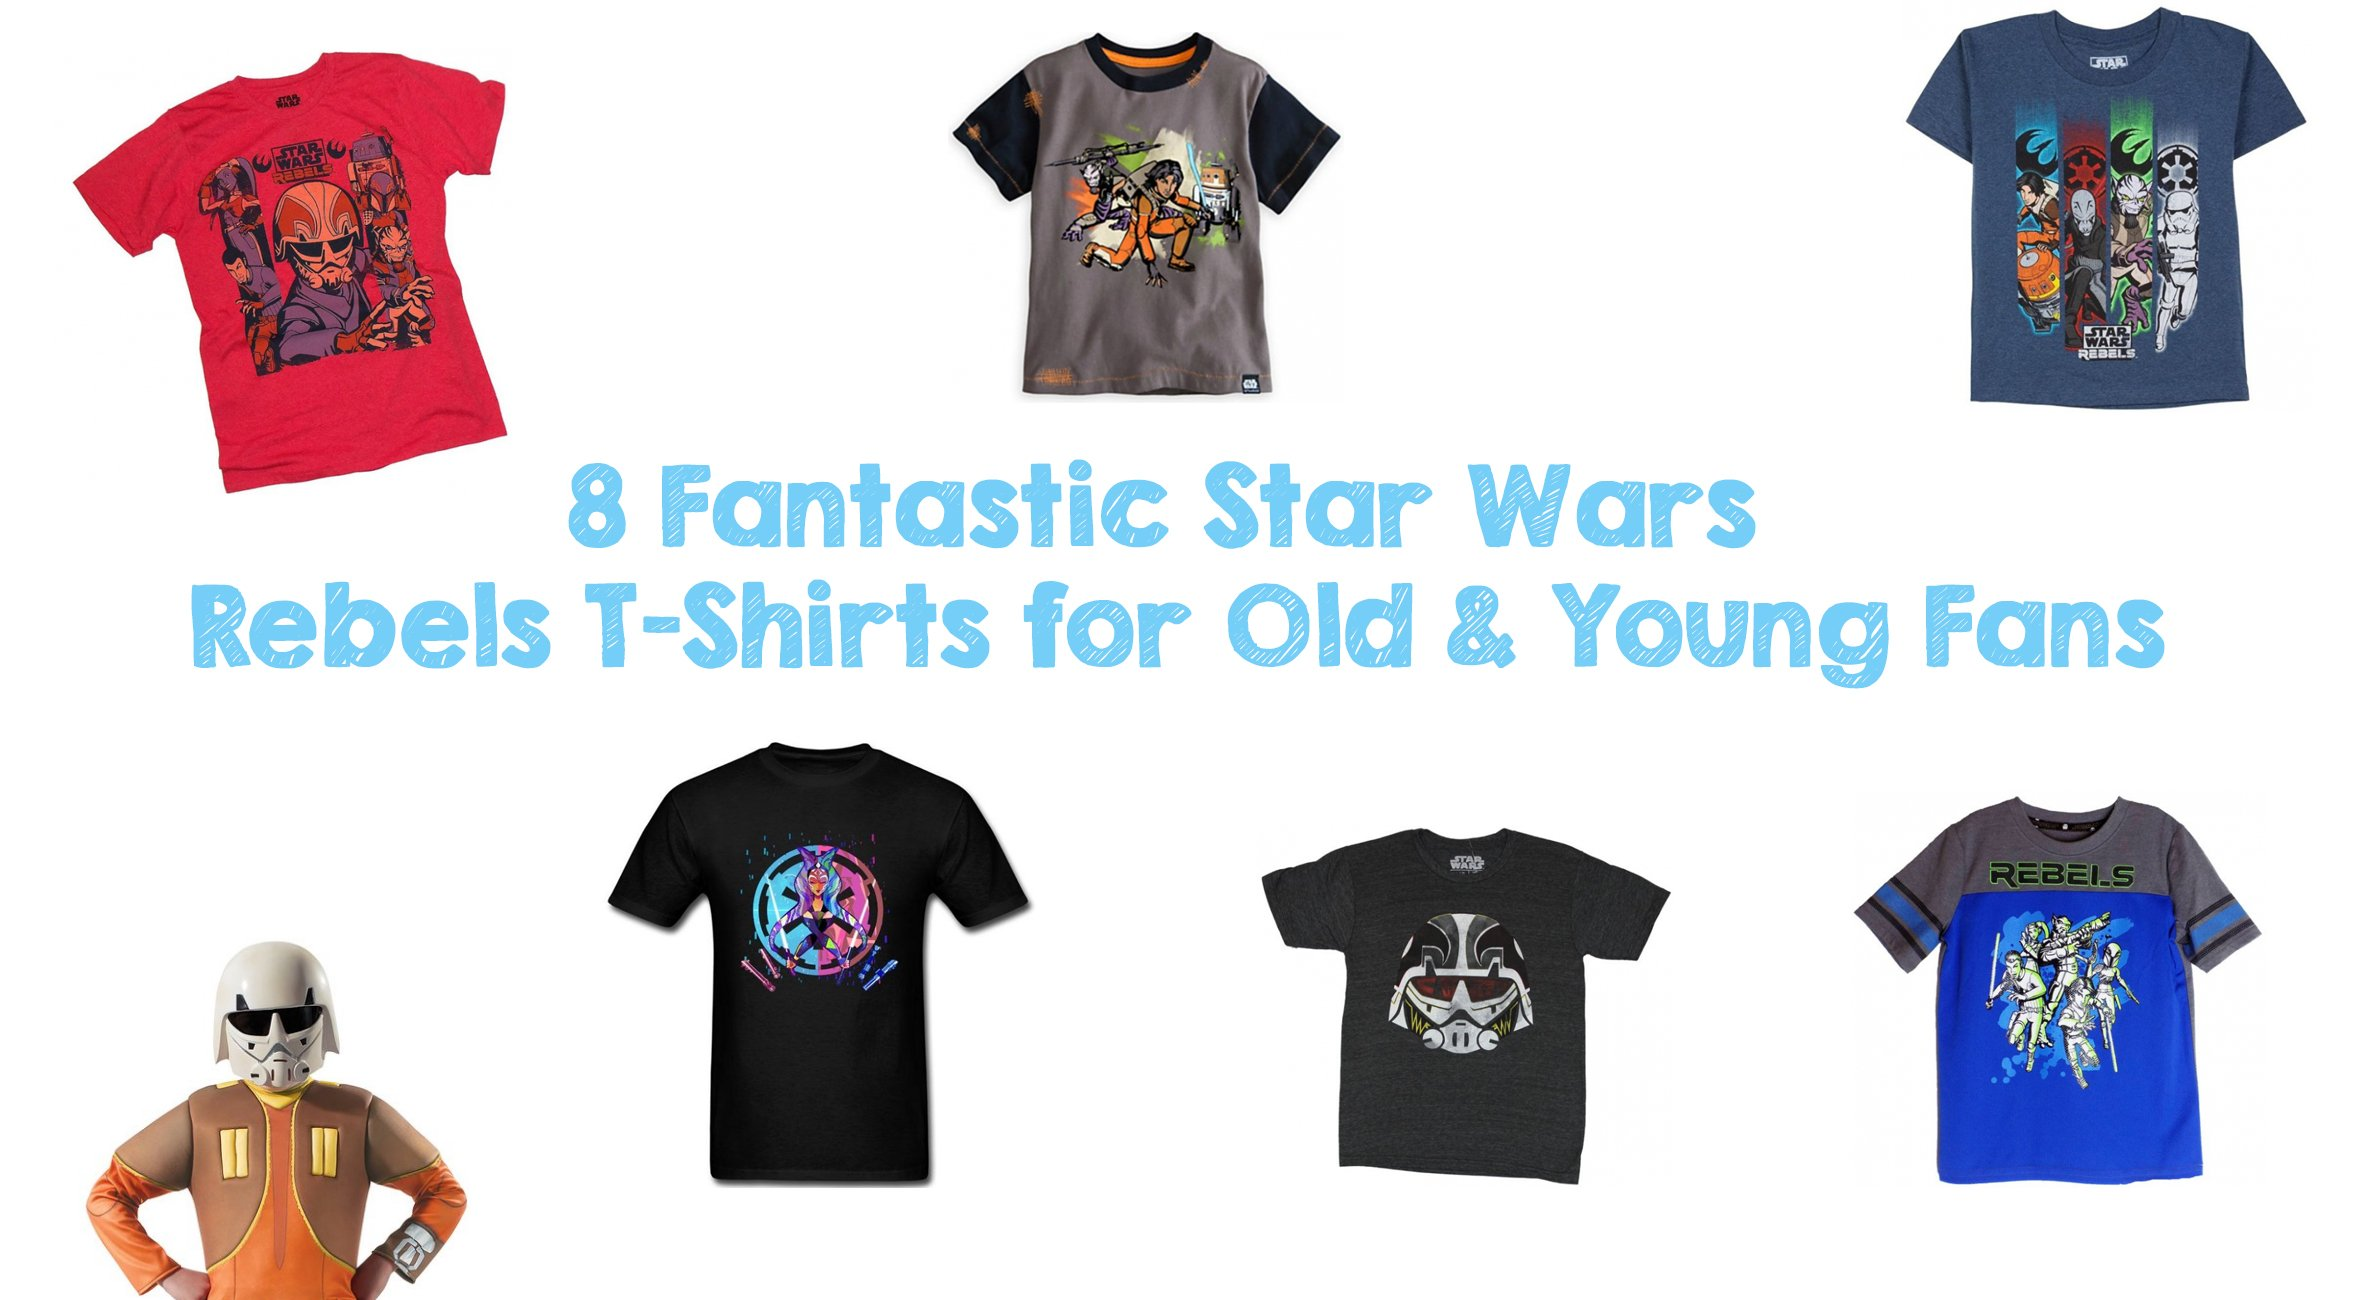 8 Fantastic Star Wars Rebels T-Shirts for Old & Young Fans